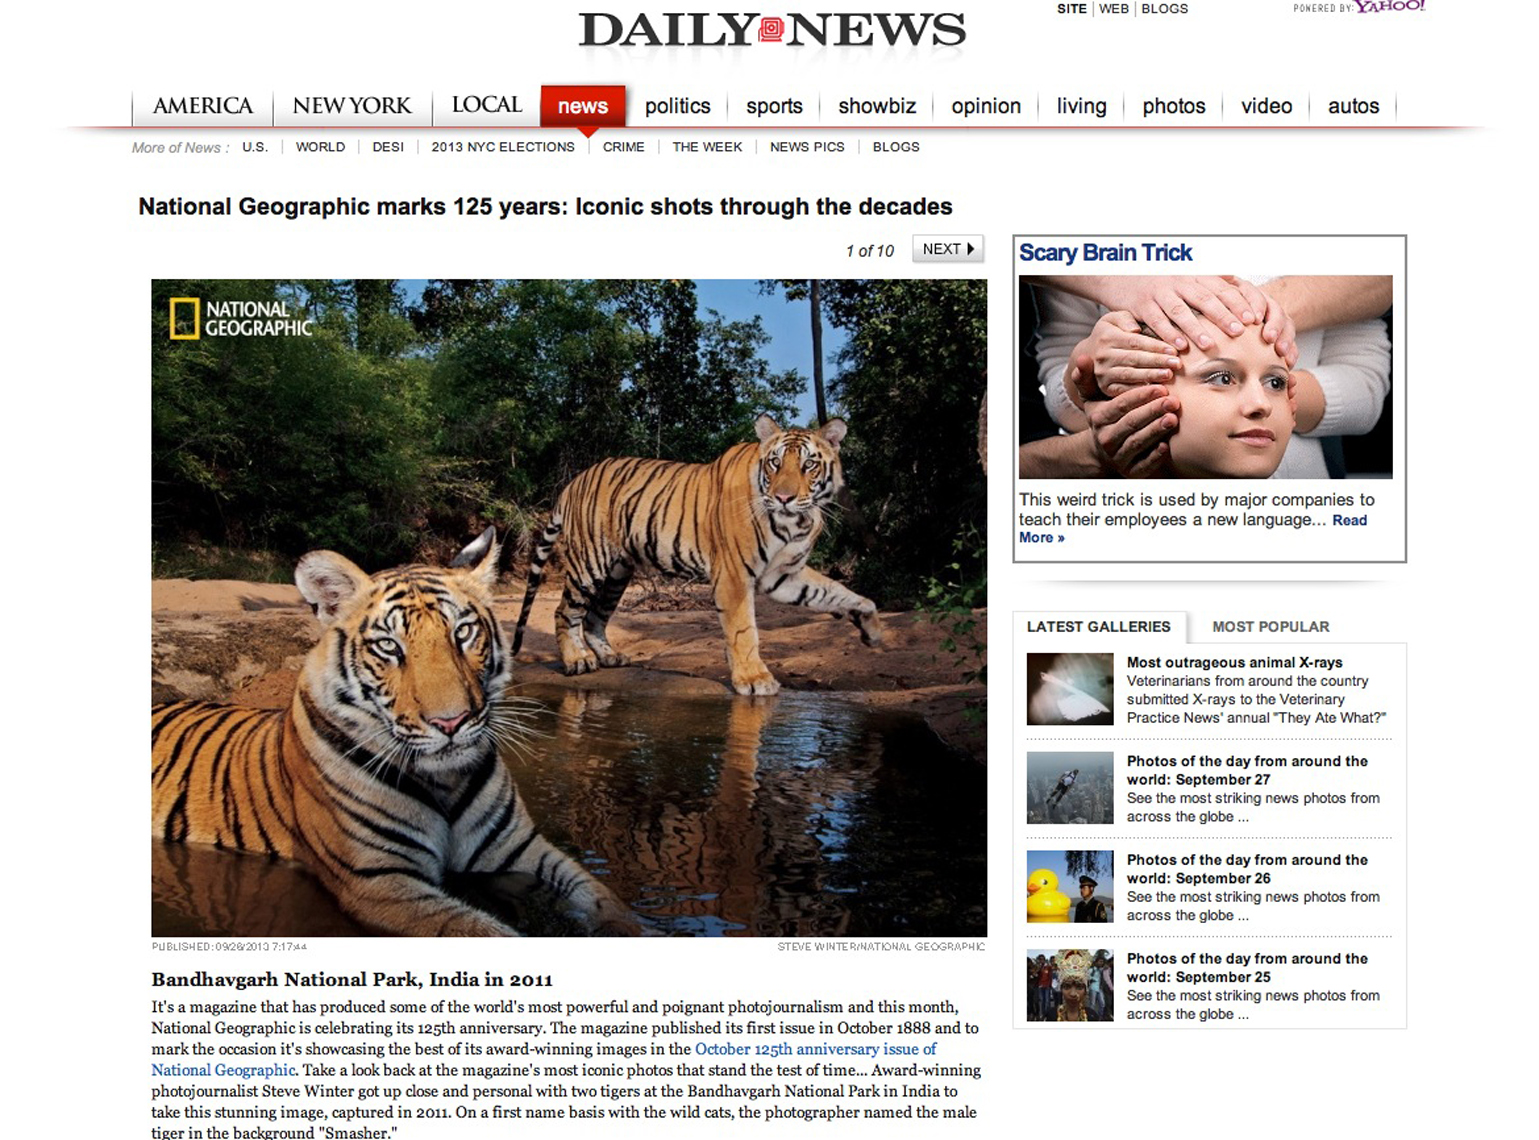 DailyMail_NatGeo125th_web